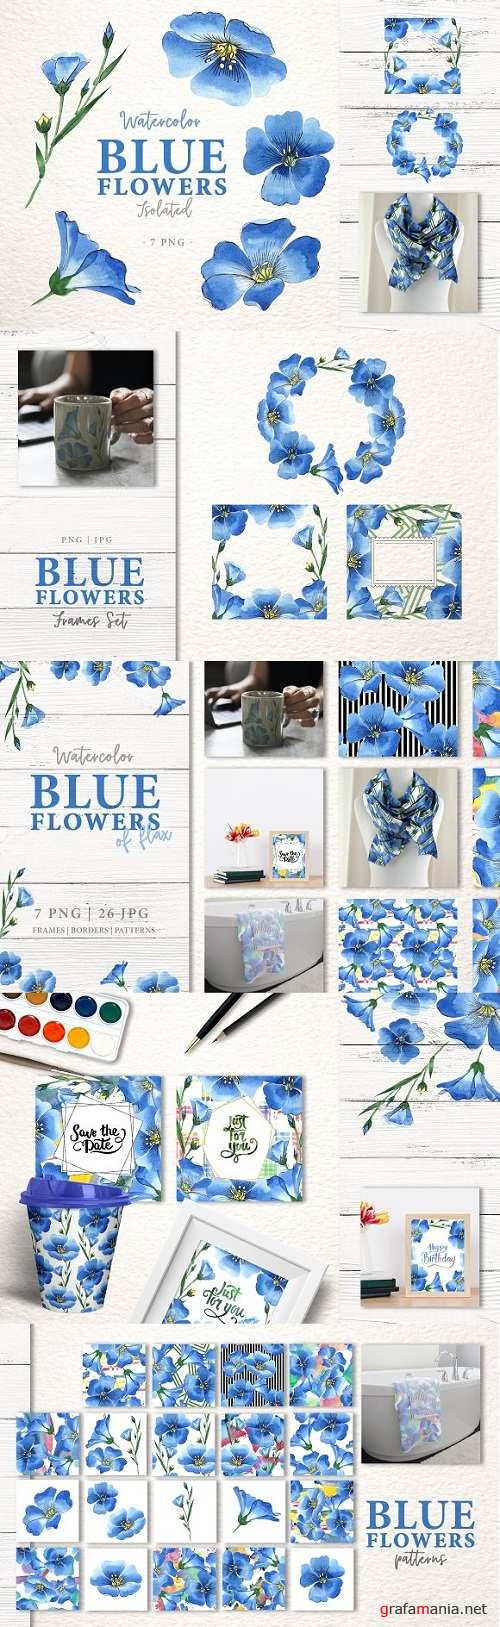 Blue flowers of flax Watercolor png - 3344724